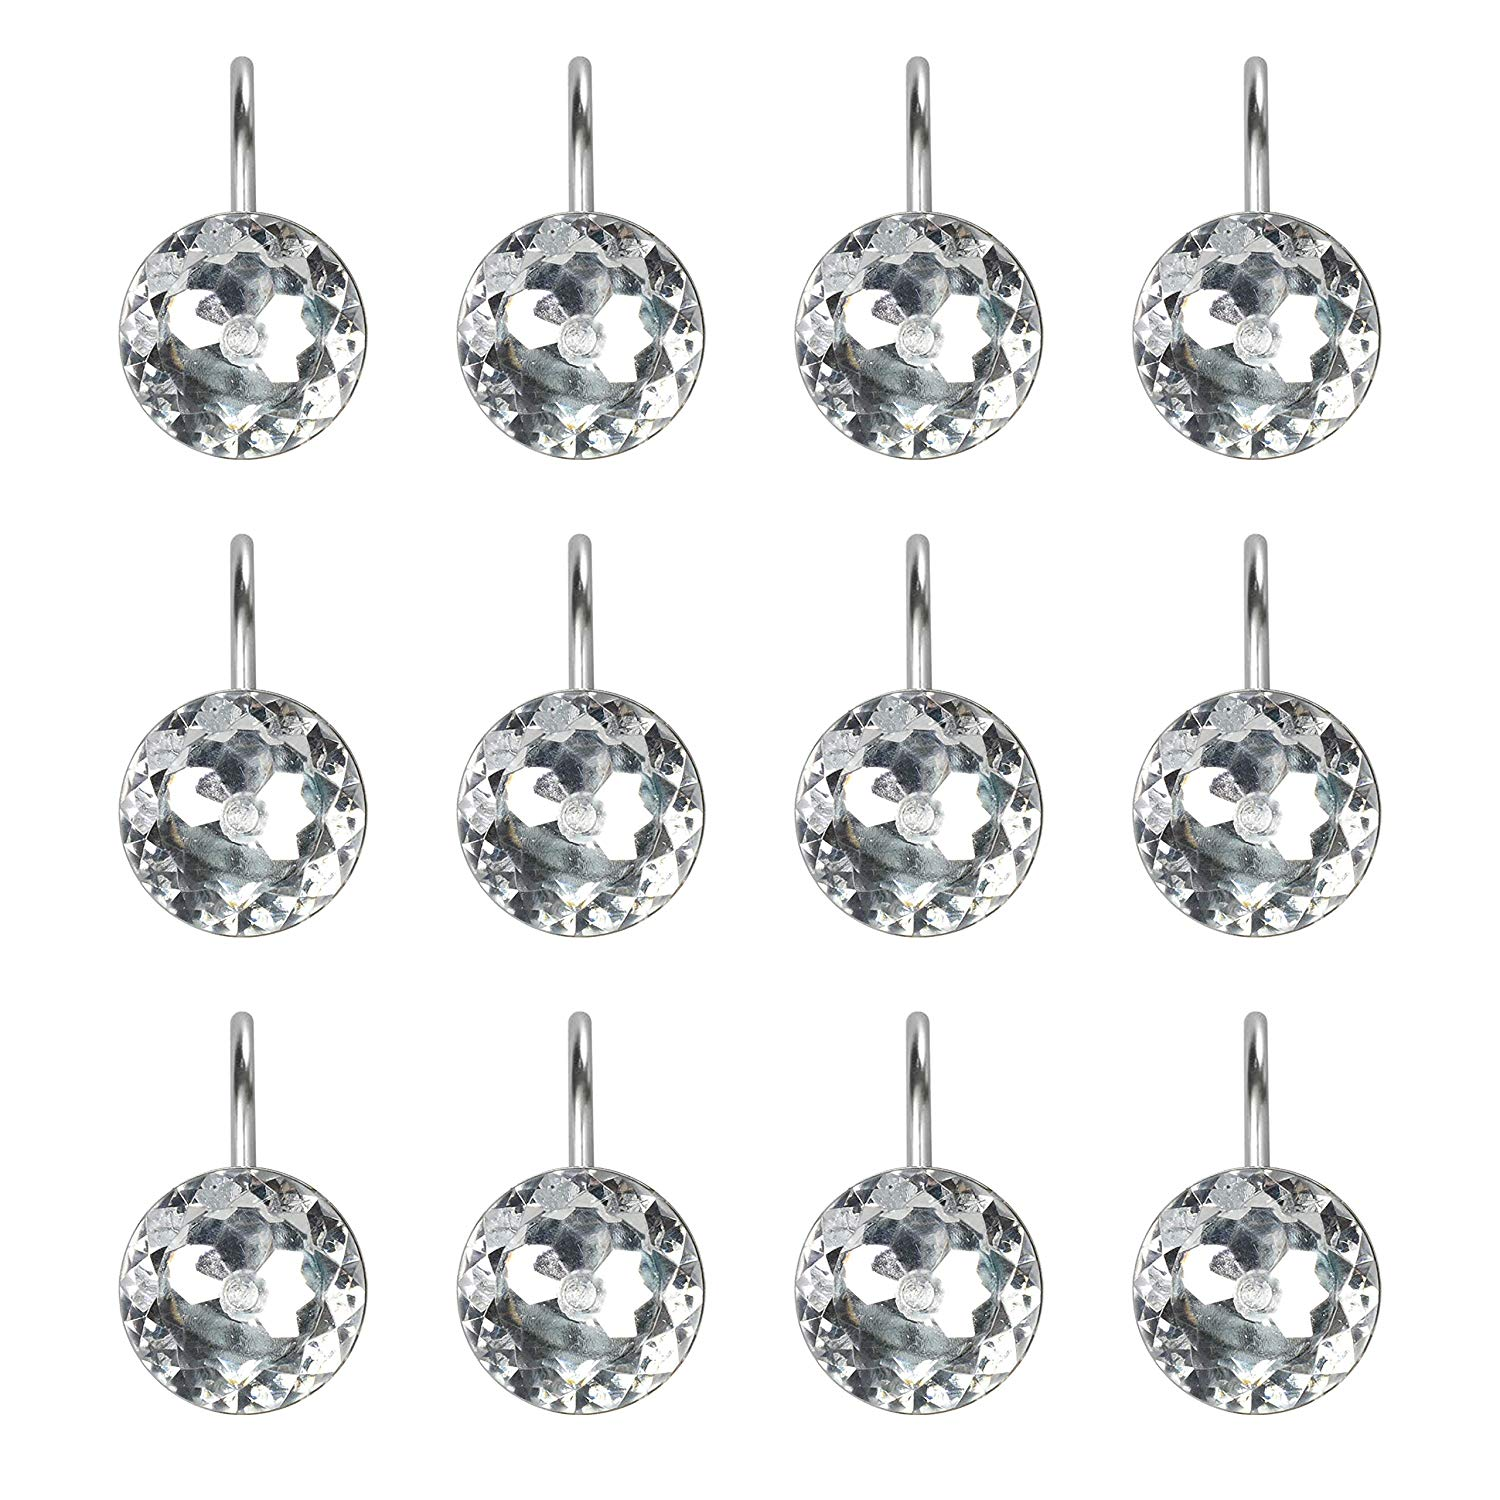 walfront 12pack shower curtain hooks and rings shower rhinestone rolling curtain crystal hooks clear decorative crystal diamond shape shower rings